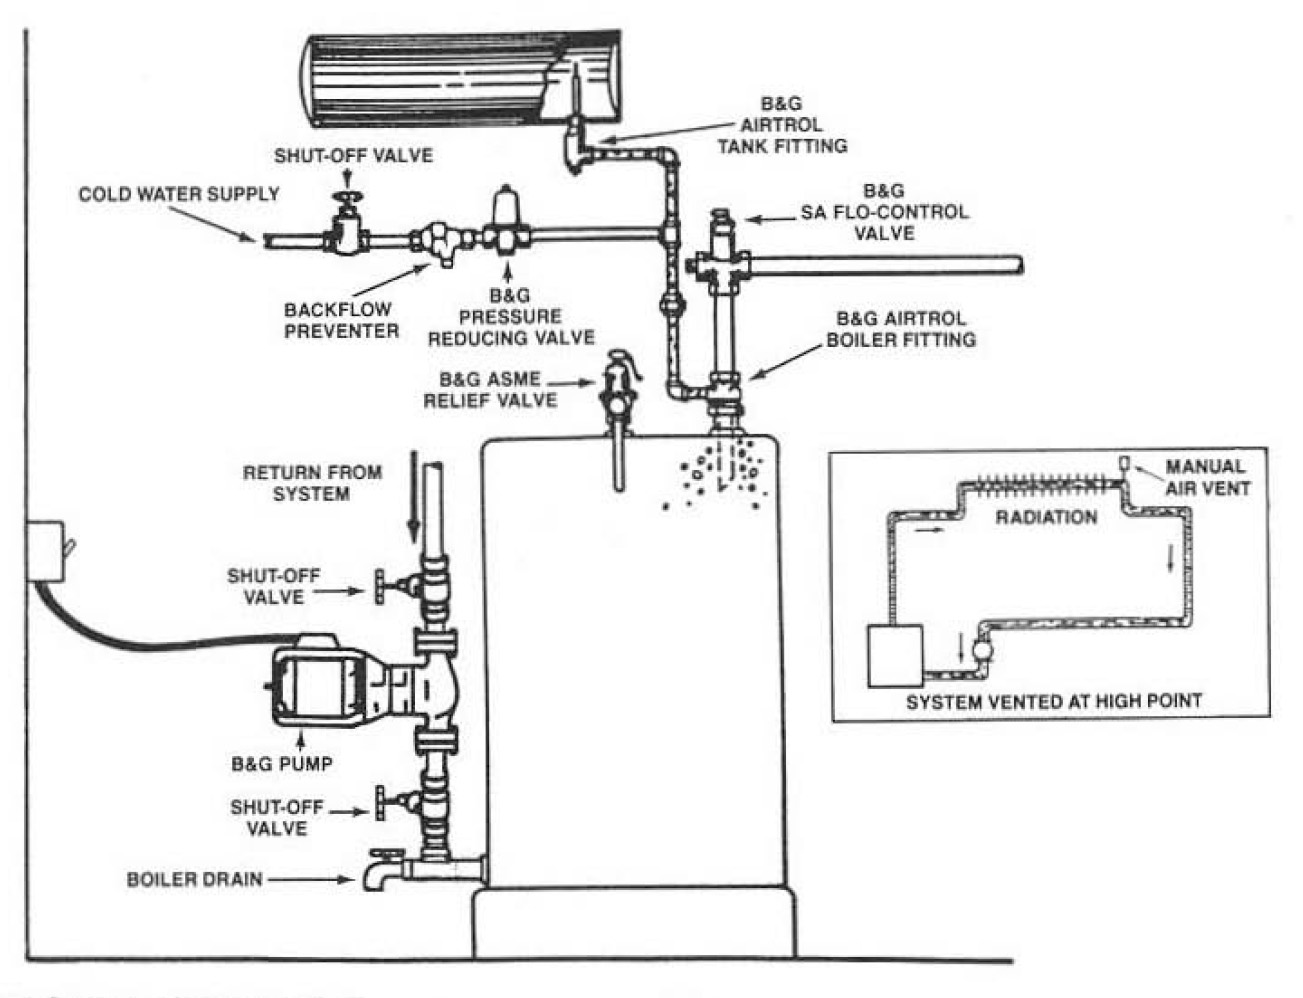 bell gossett 106189 series 100 flgd cast iron booster pump bell gossett general pump system installation